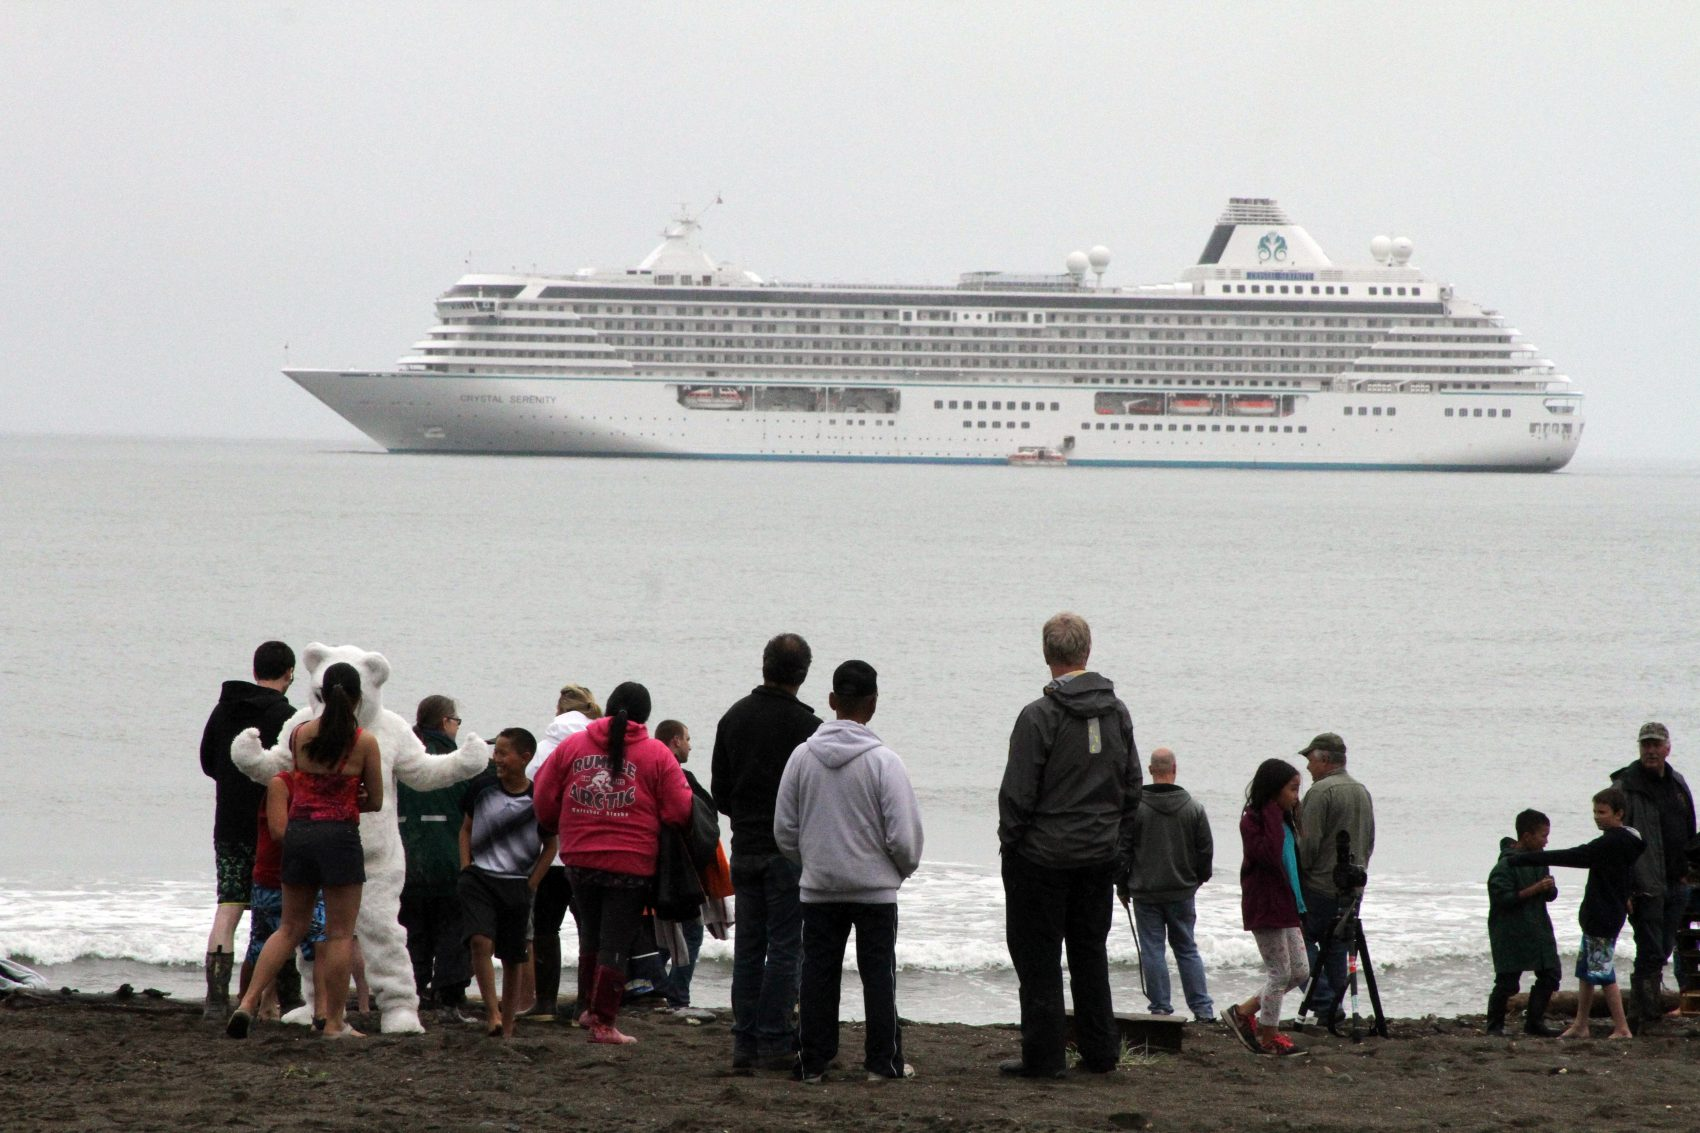 Onlookers prepare to take a polar plunge in the Bering Sea in front of the luxury cruise ship Crystal Serenity, which anchored just outside Nome, Alaska. The ship made a port call as it became the largest cruise ship to ever go through the Northwest Passage, en route to New York City. (Mark Thiessen/AP)